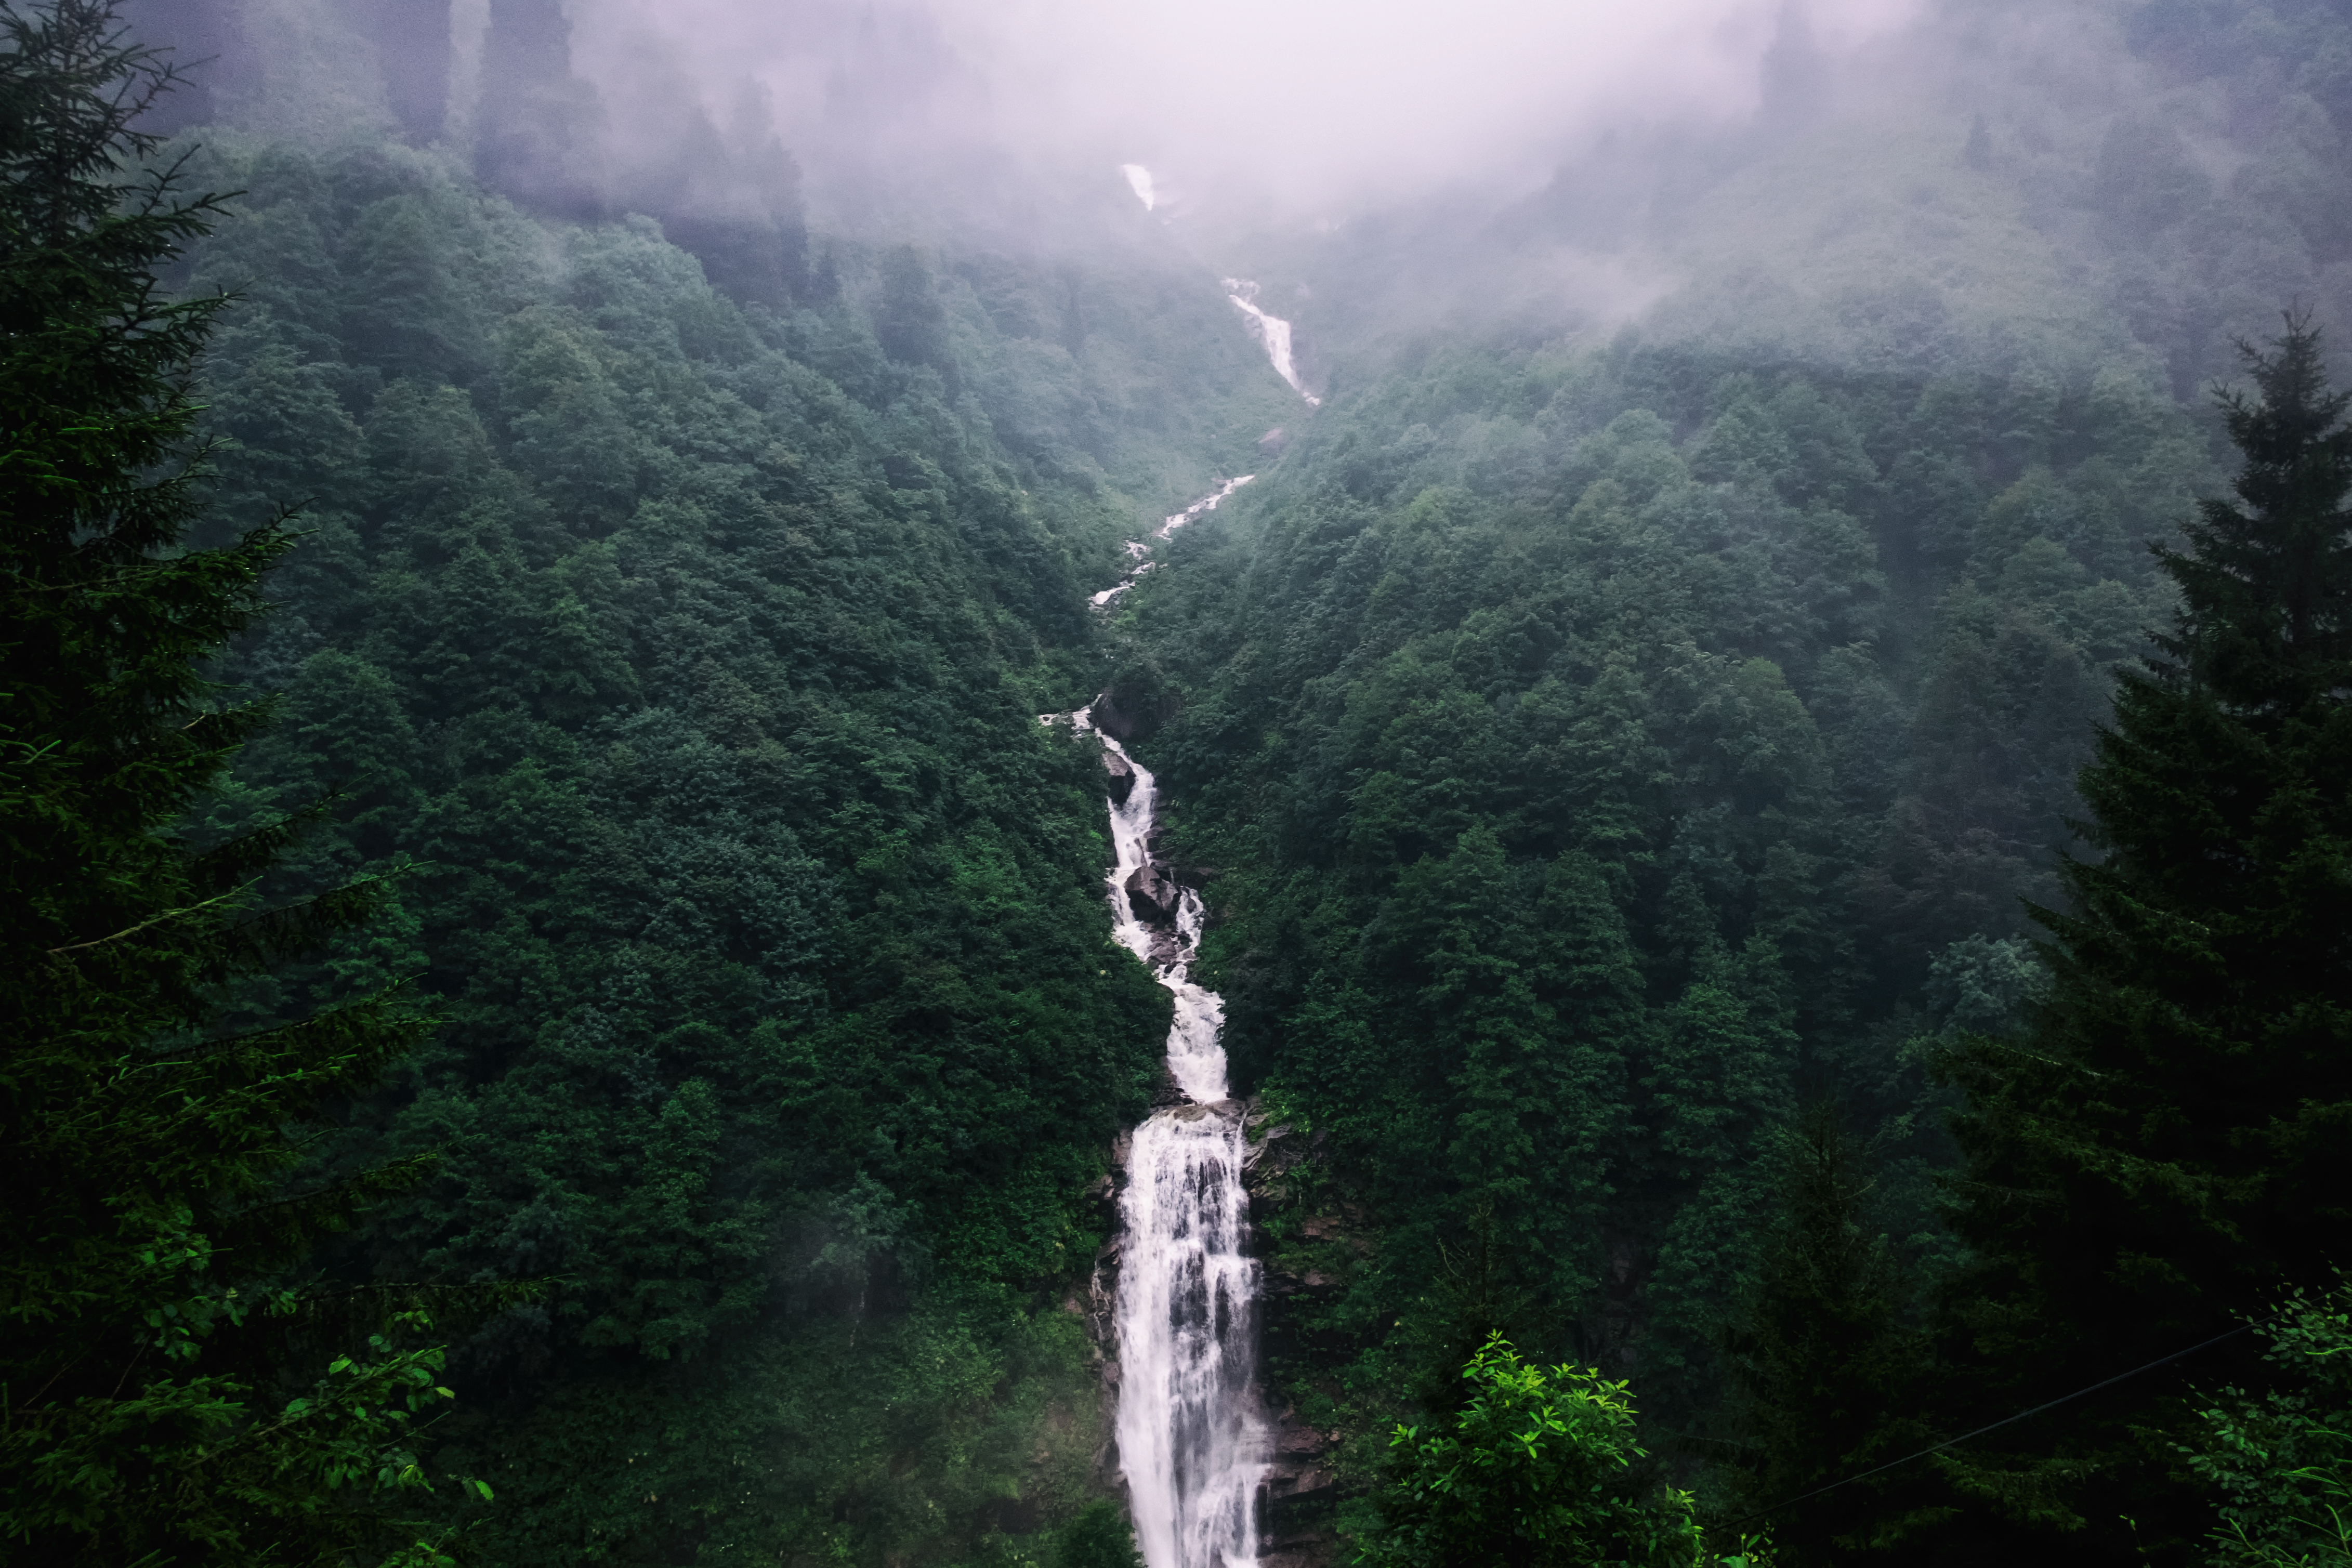 115389 free wallpaper 720x1520 for phone, download images Nature, Trees, Waterfall, Fog 720x1520 for mobile